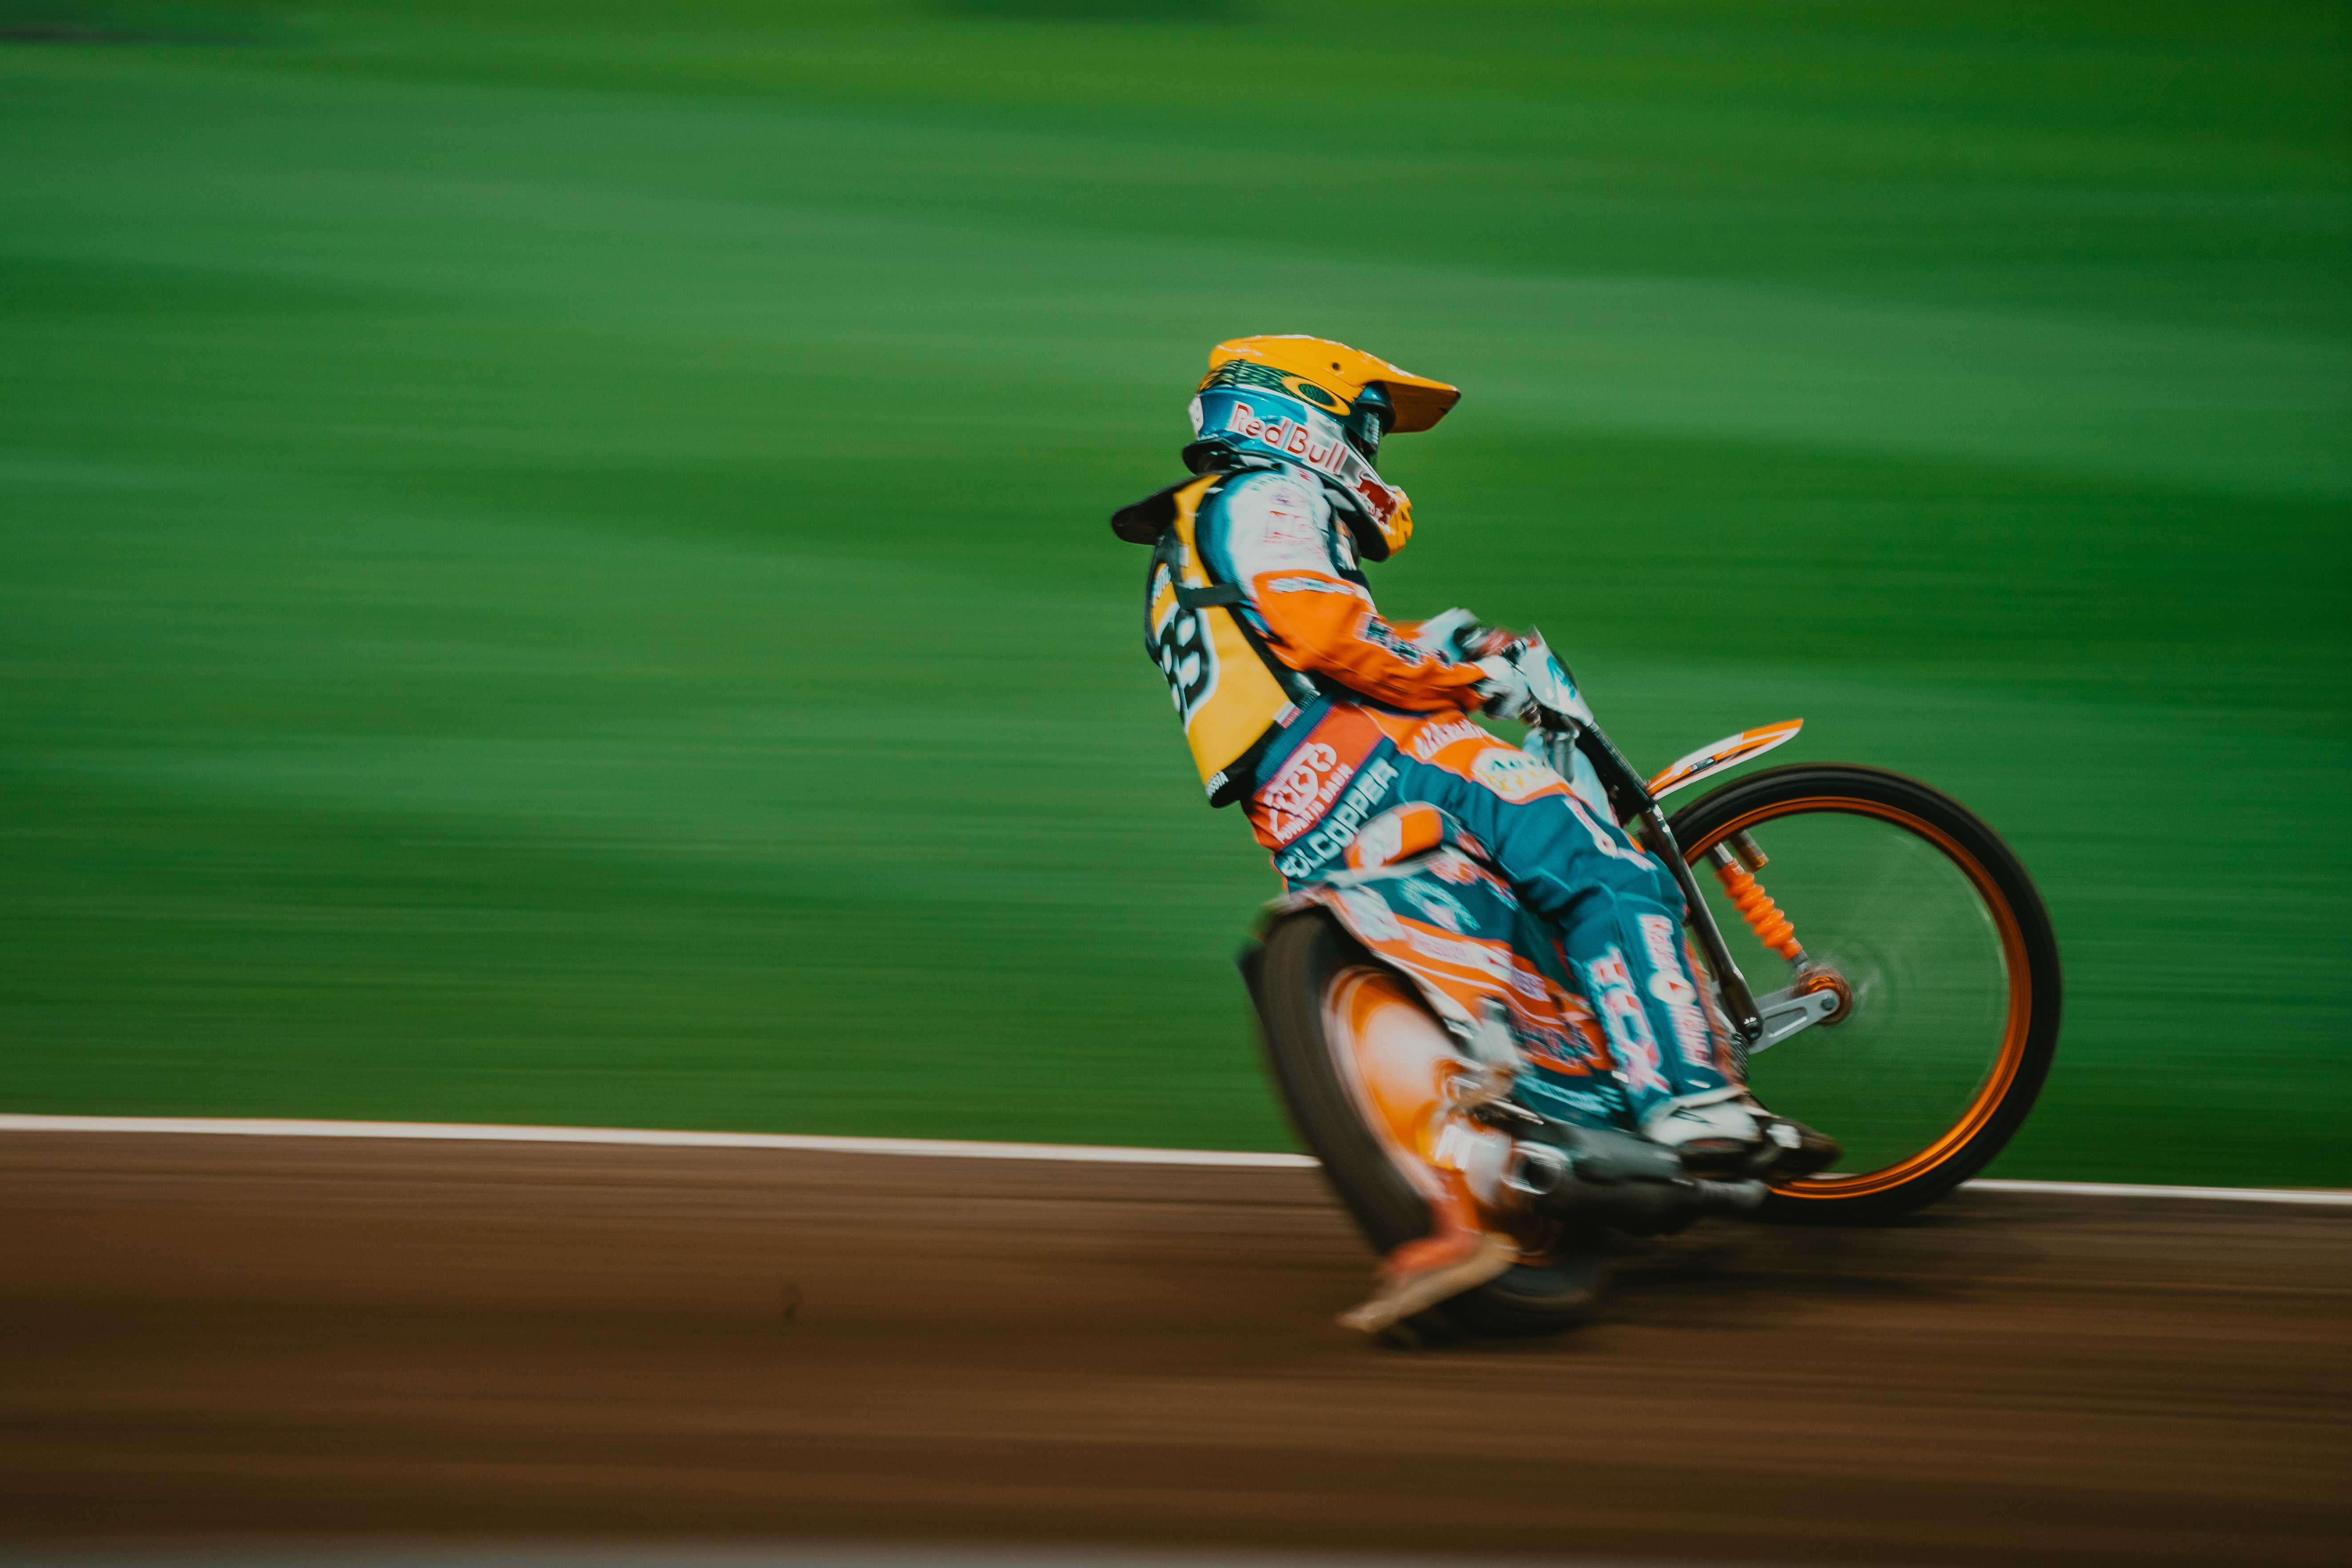 man riding motocross bike on panning photography